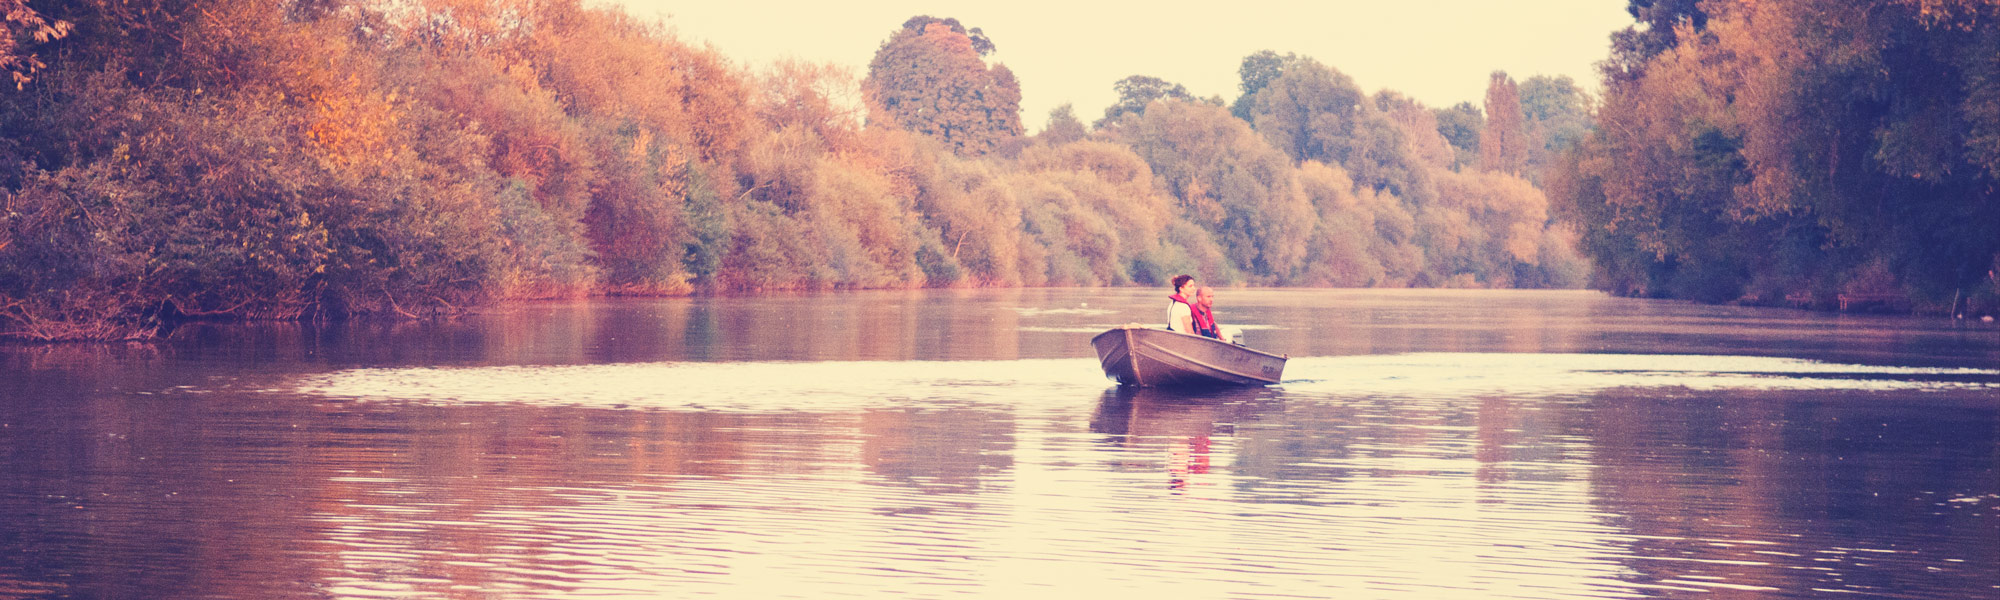 self-drive-boat-hire-upton-upon-severn